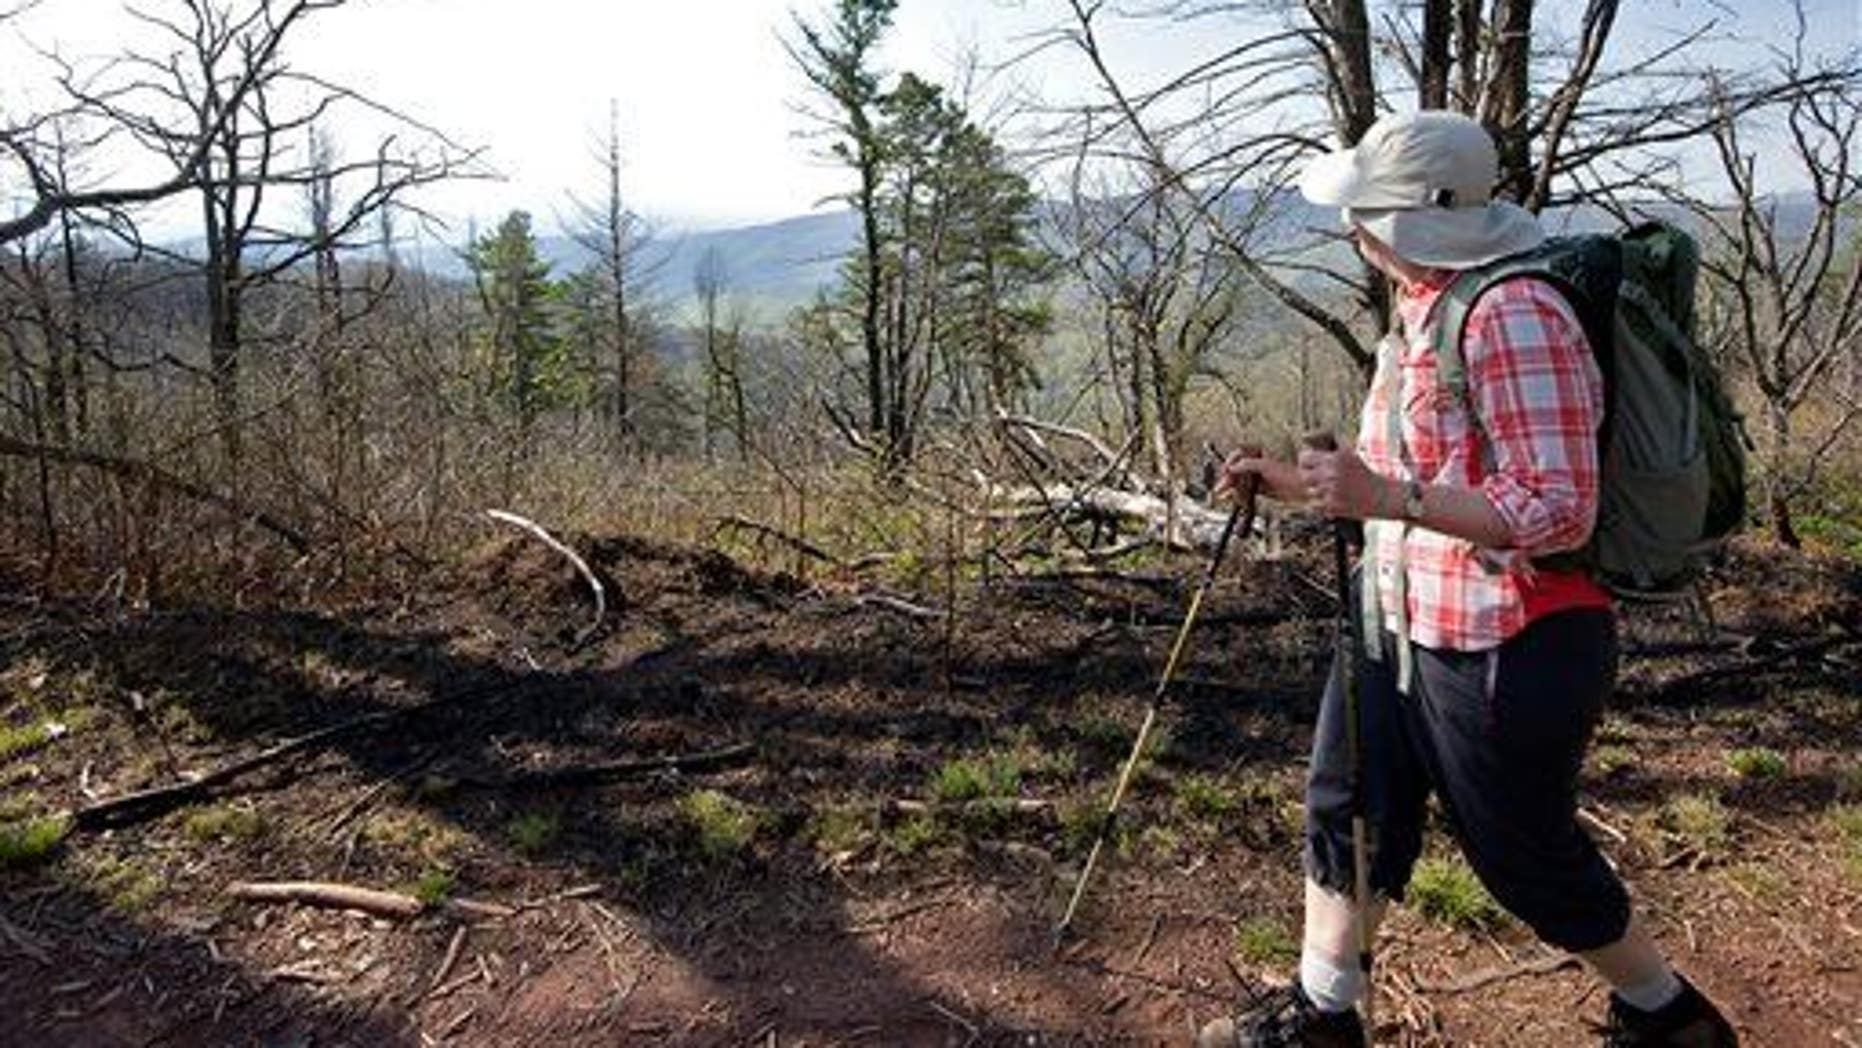 In this May 10, 2013 file photo, a woman looks out at the view while hiking the Mines Run Trail, on Shenandoah Mountain, Va.